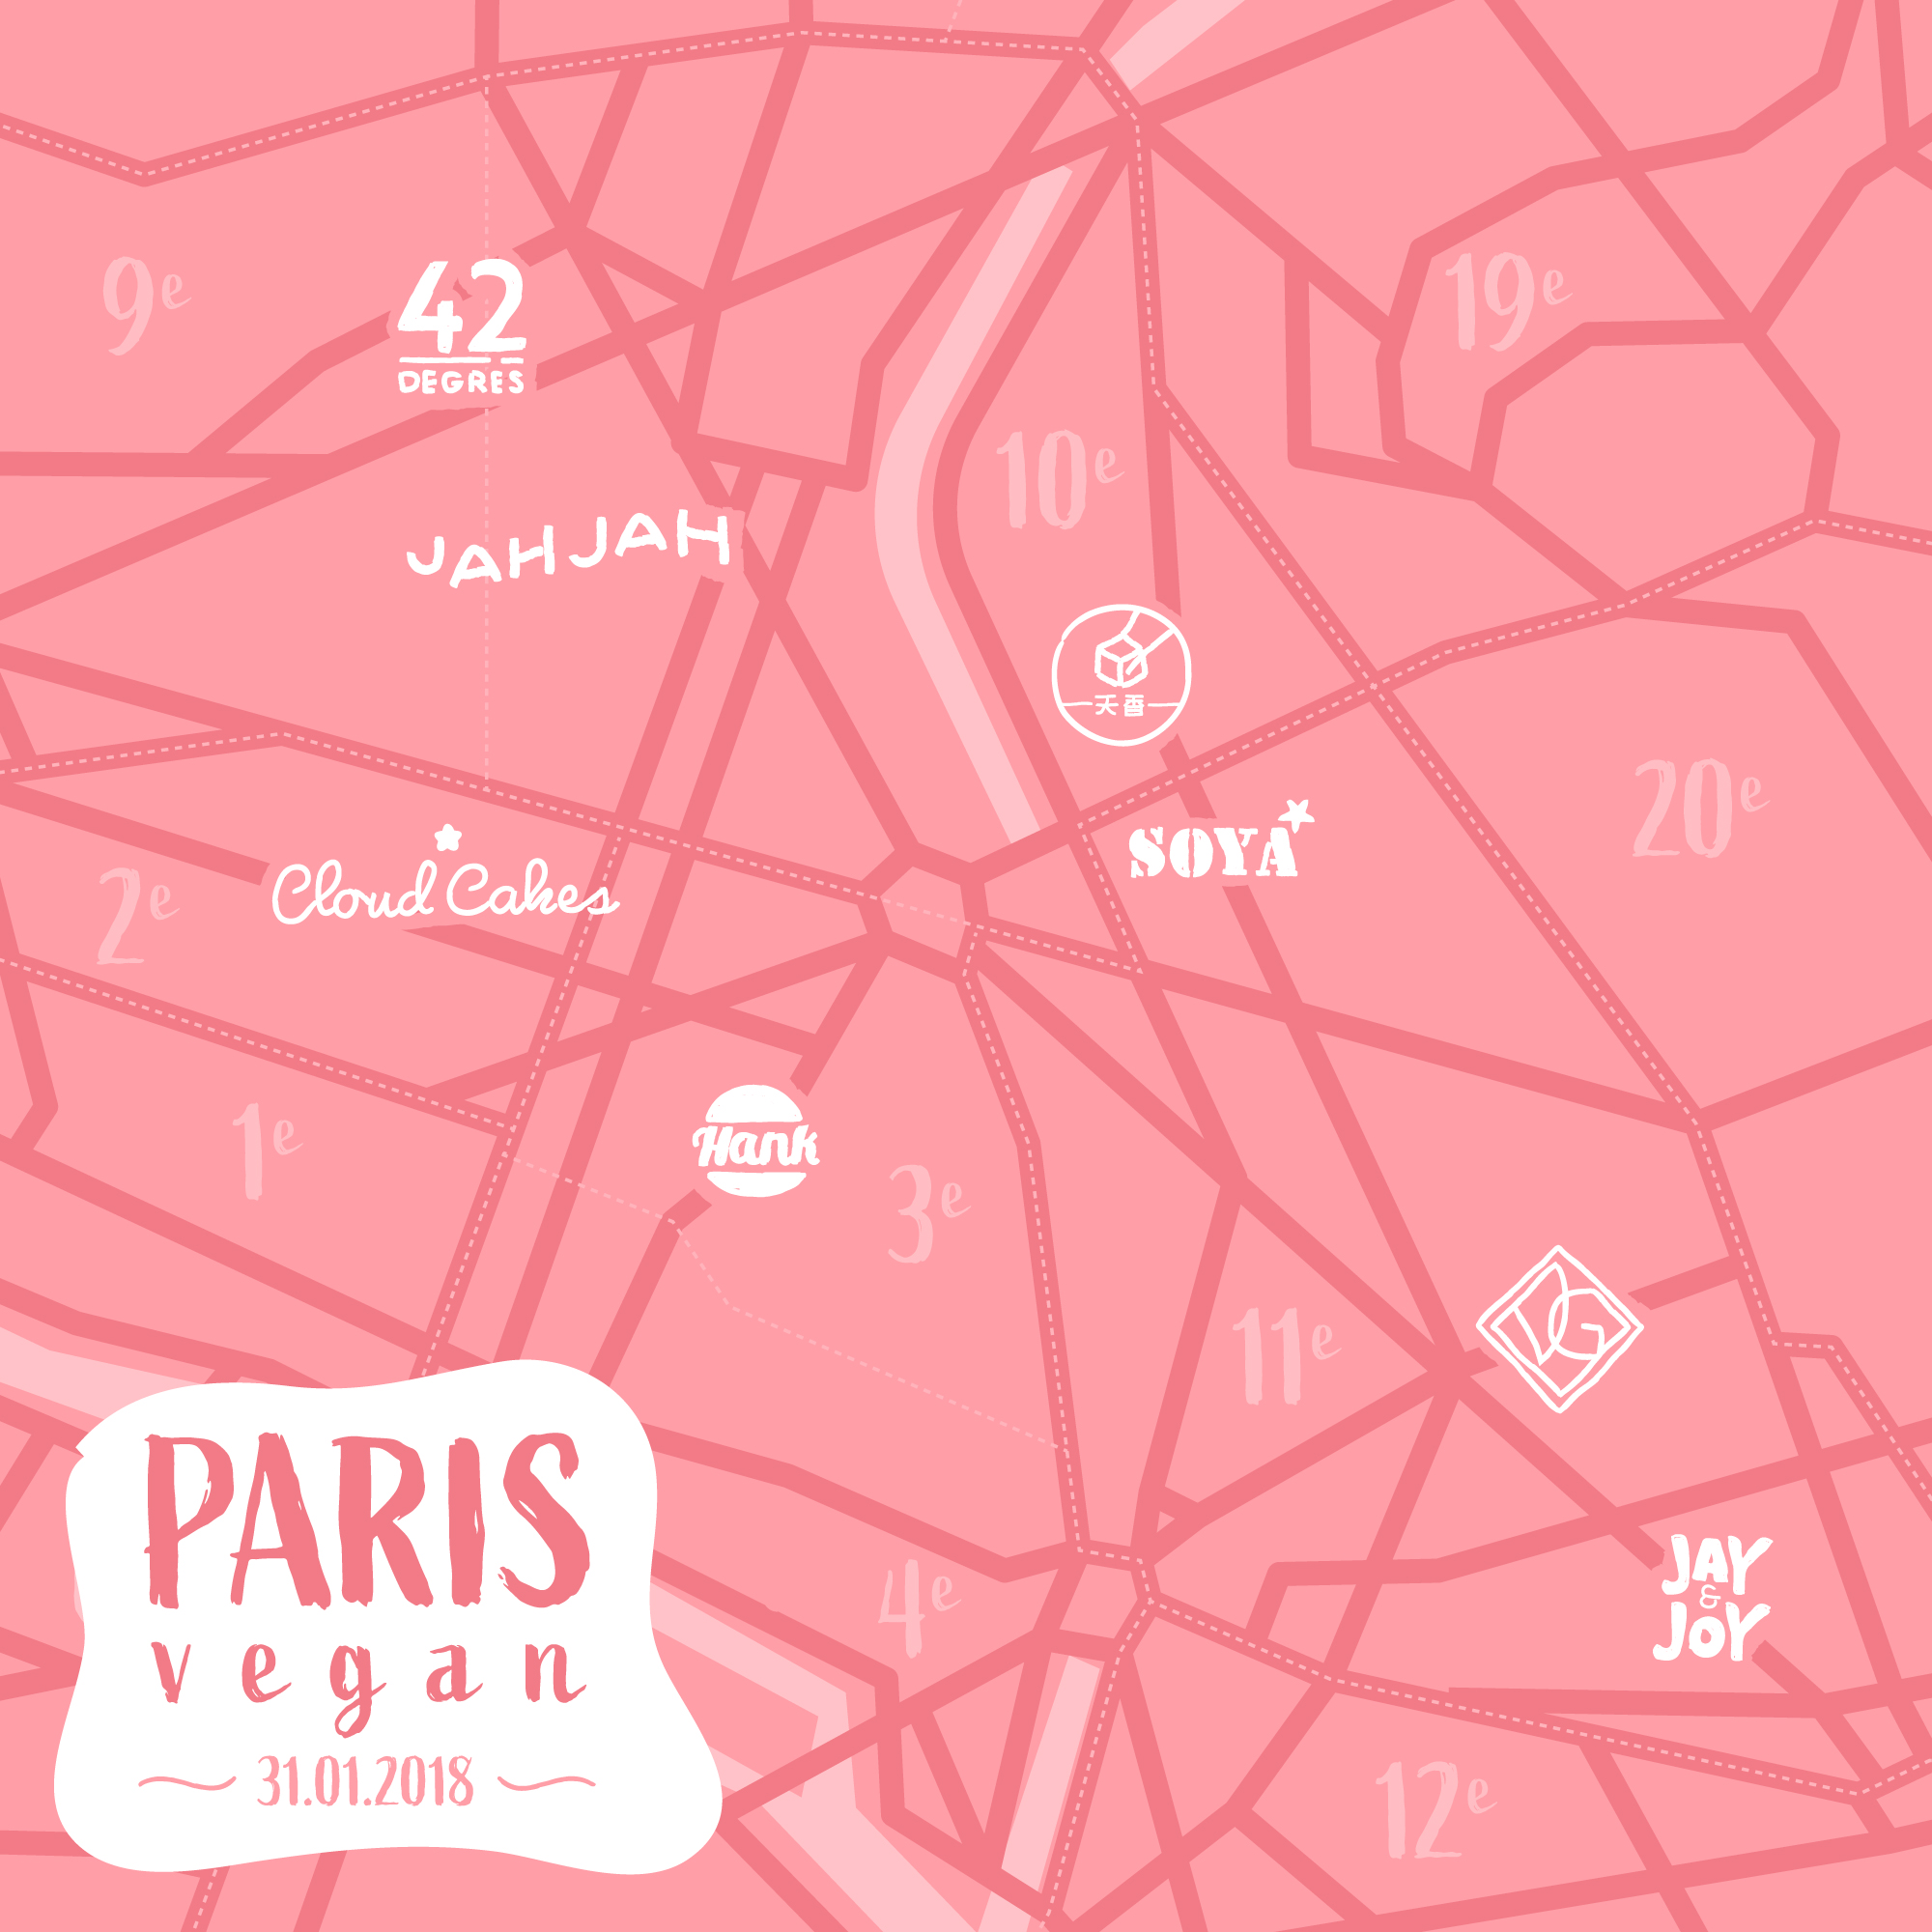 Illustrated street map of Vegan restaurants in Paris